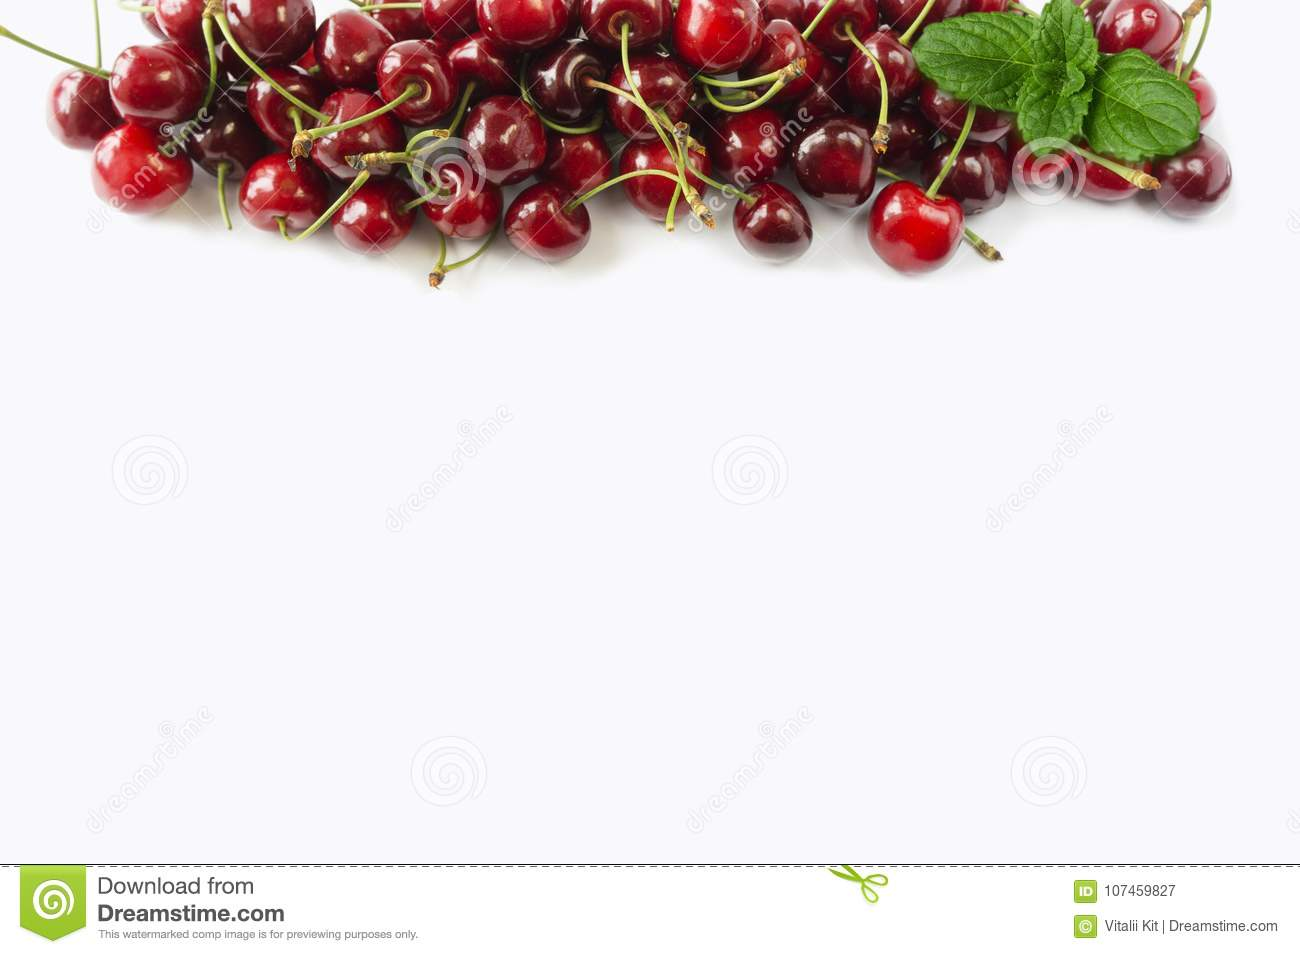 Sweet cherry berries on white background cutout. Cherry fruit at border of image with copy space for text.